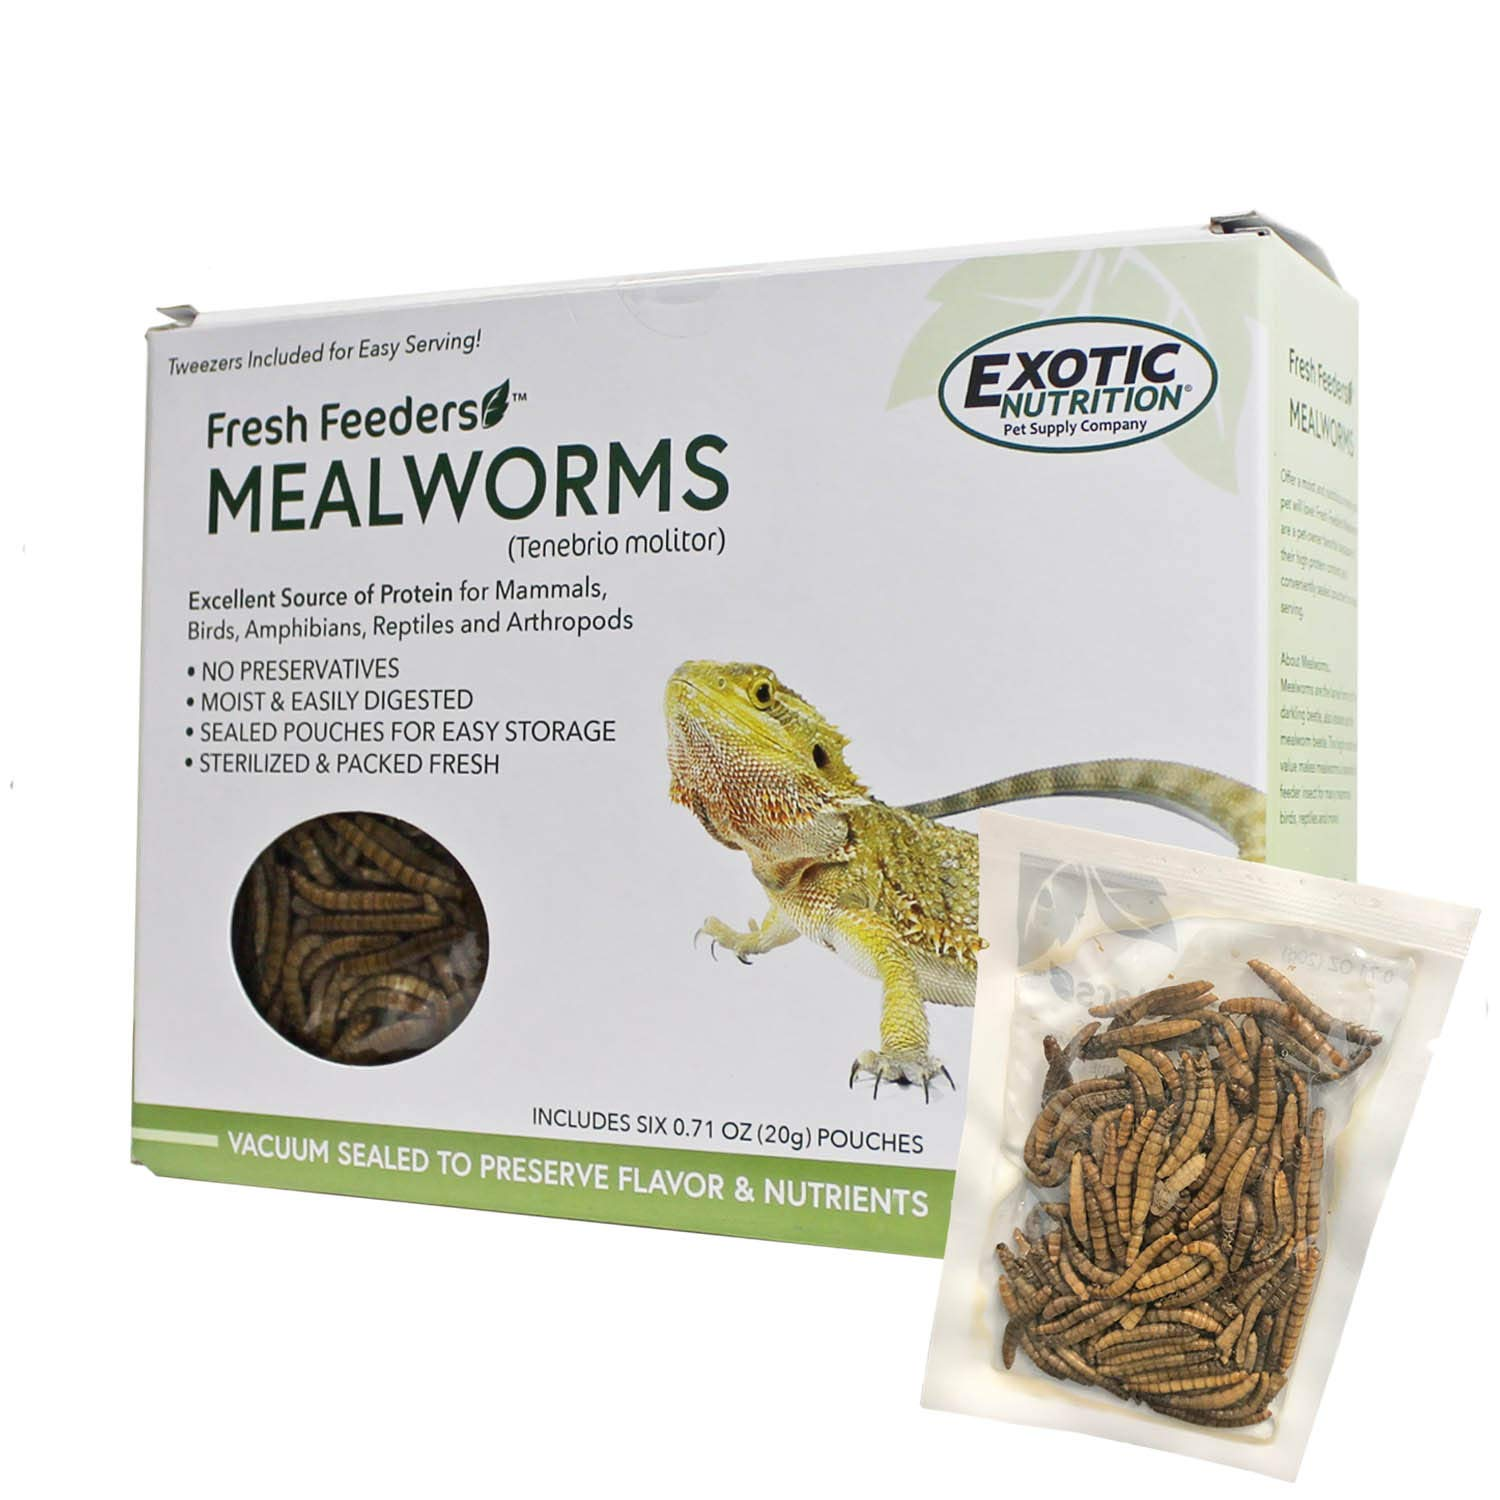 Fresh Feeders (Mealworms) - All Natural High Protein Insect Treat - Single Serving Pouches - Chickens, Wild Birds, Hedgehogs, Bluebirds, Reptiles, Sugar Gliders, Opossums, Skunks, Lizards by Exotic Nutrition